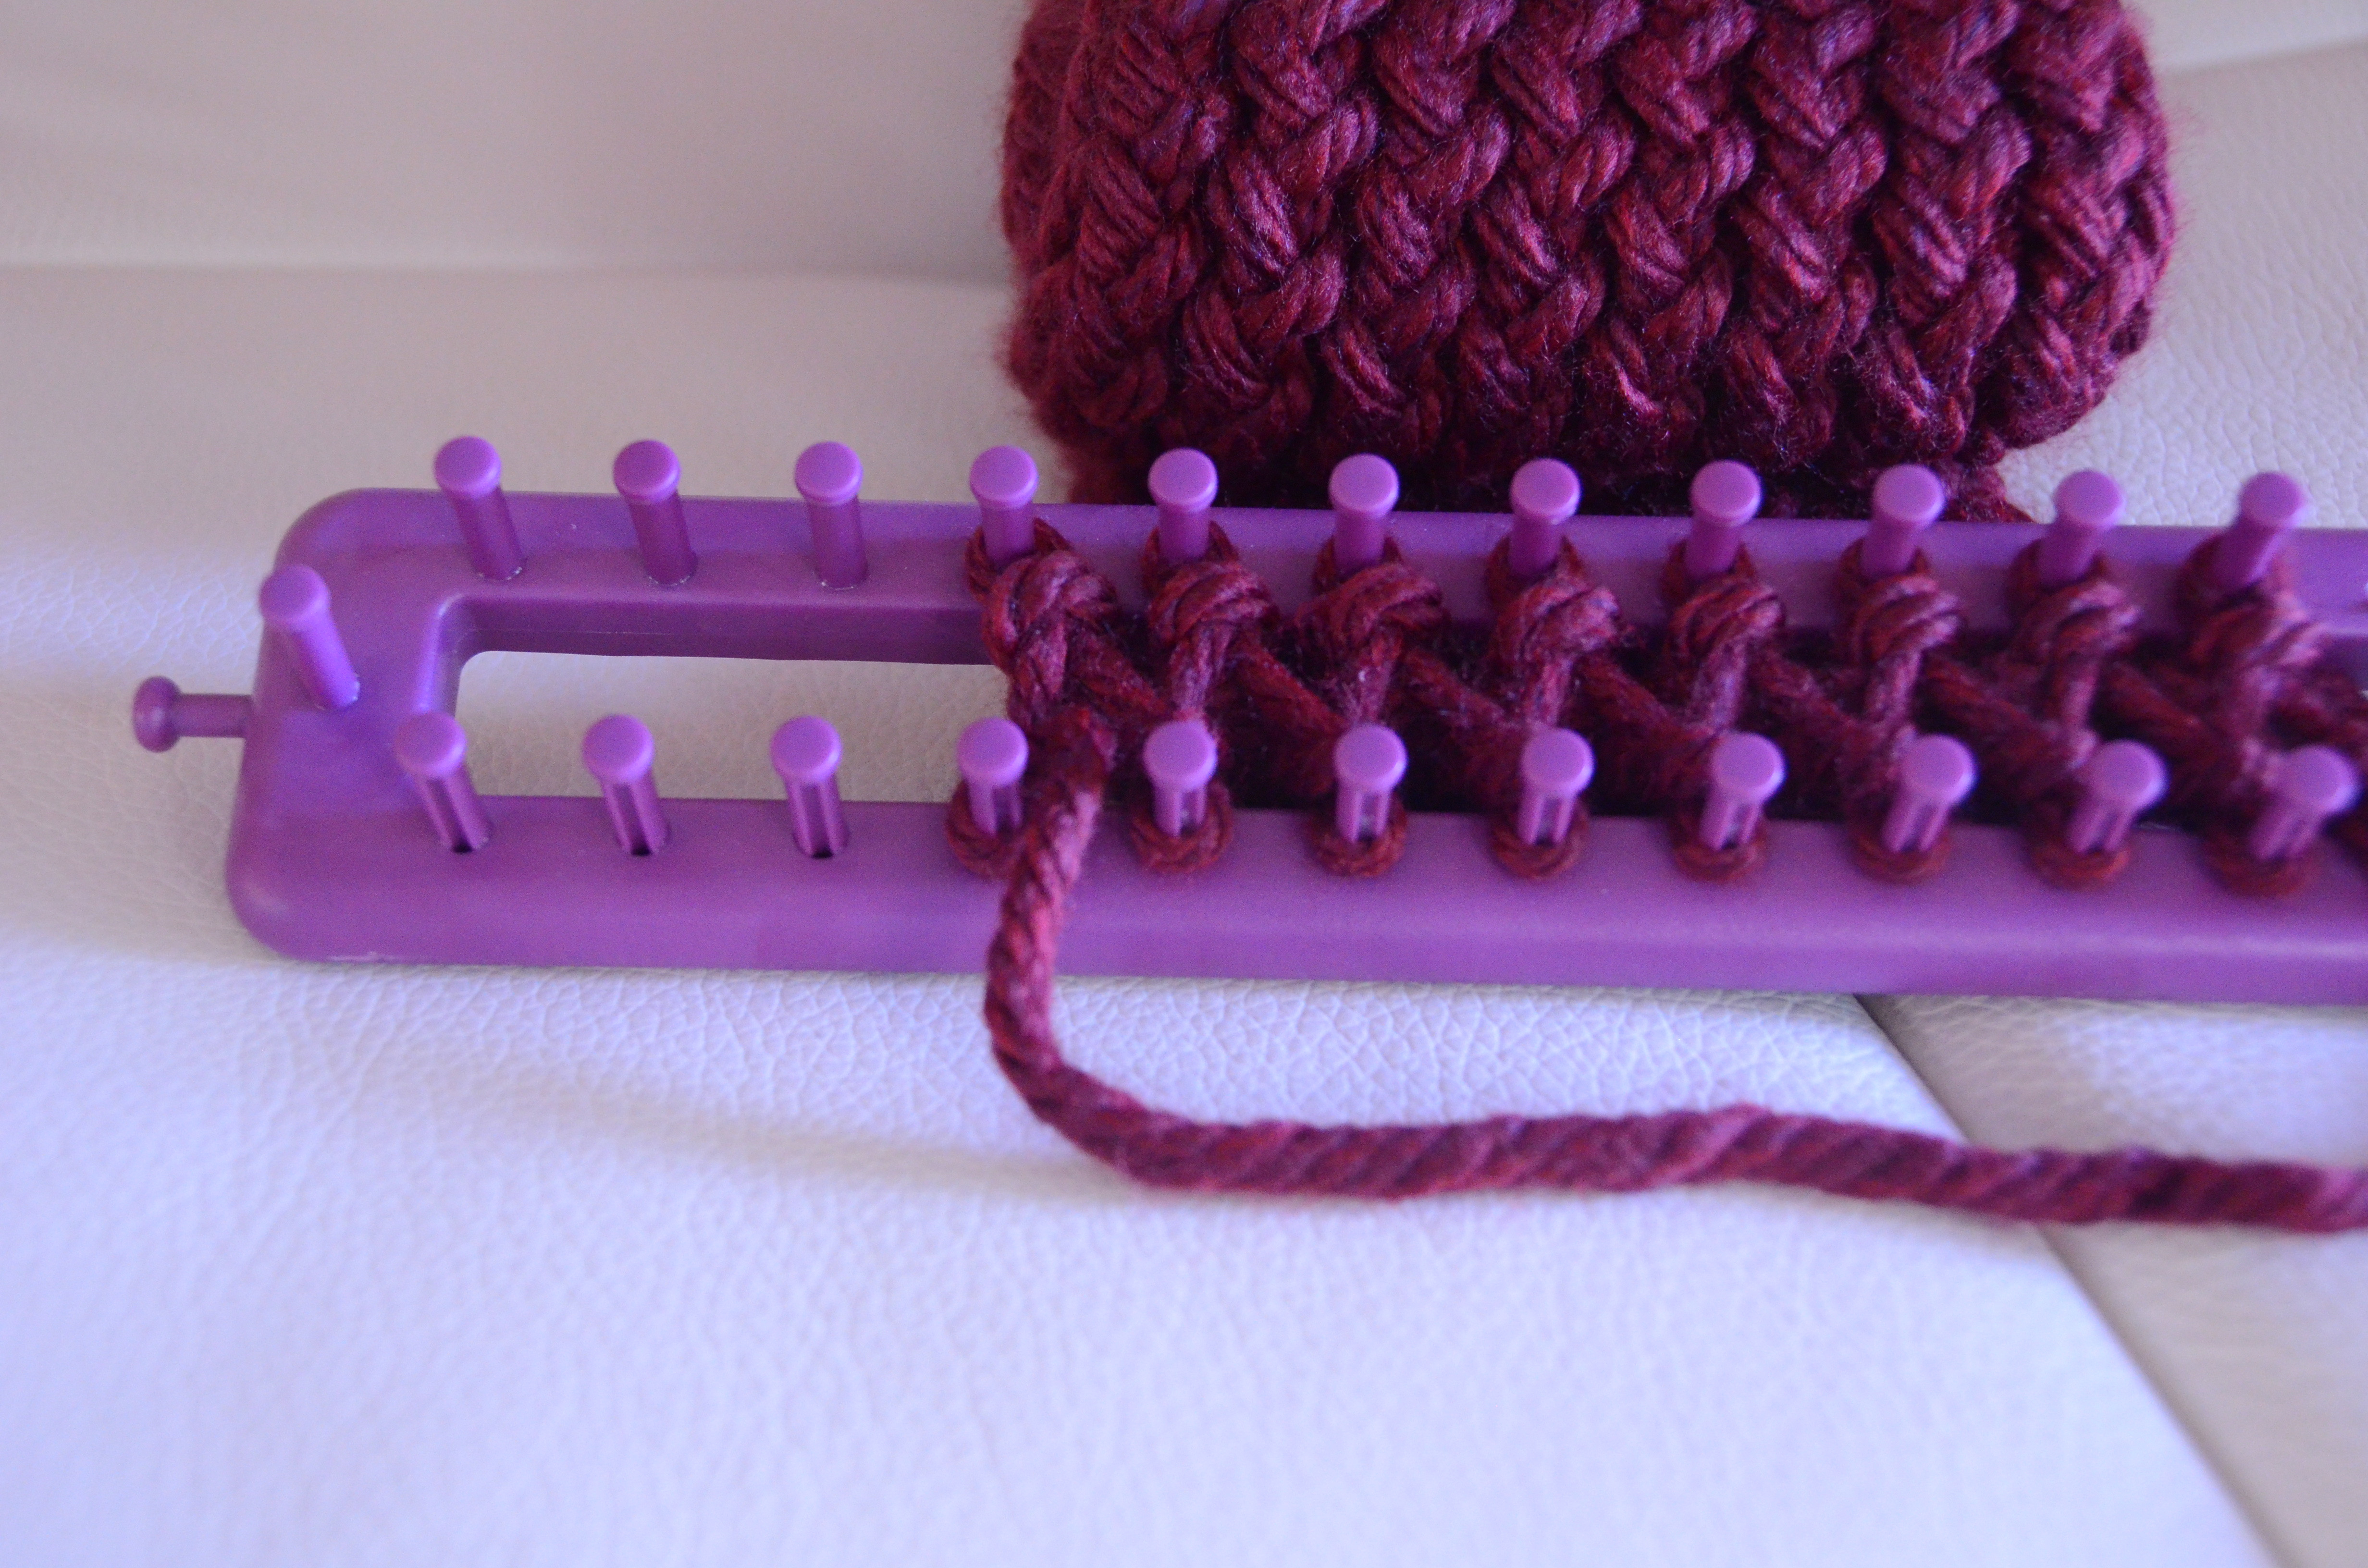 DIY How to finish a scarf on a knitting loom step by